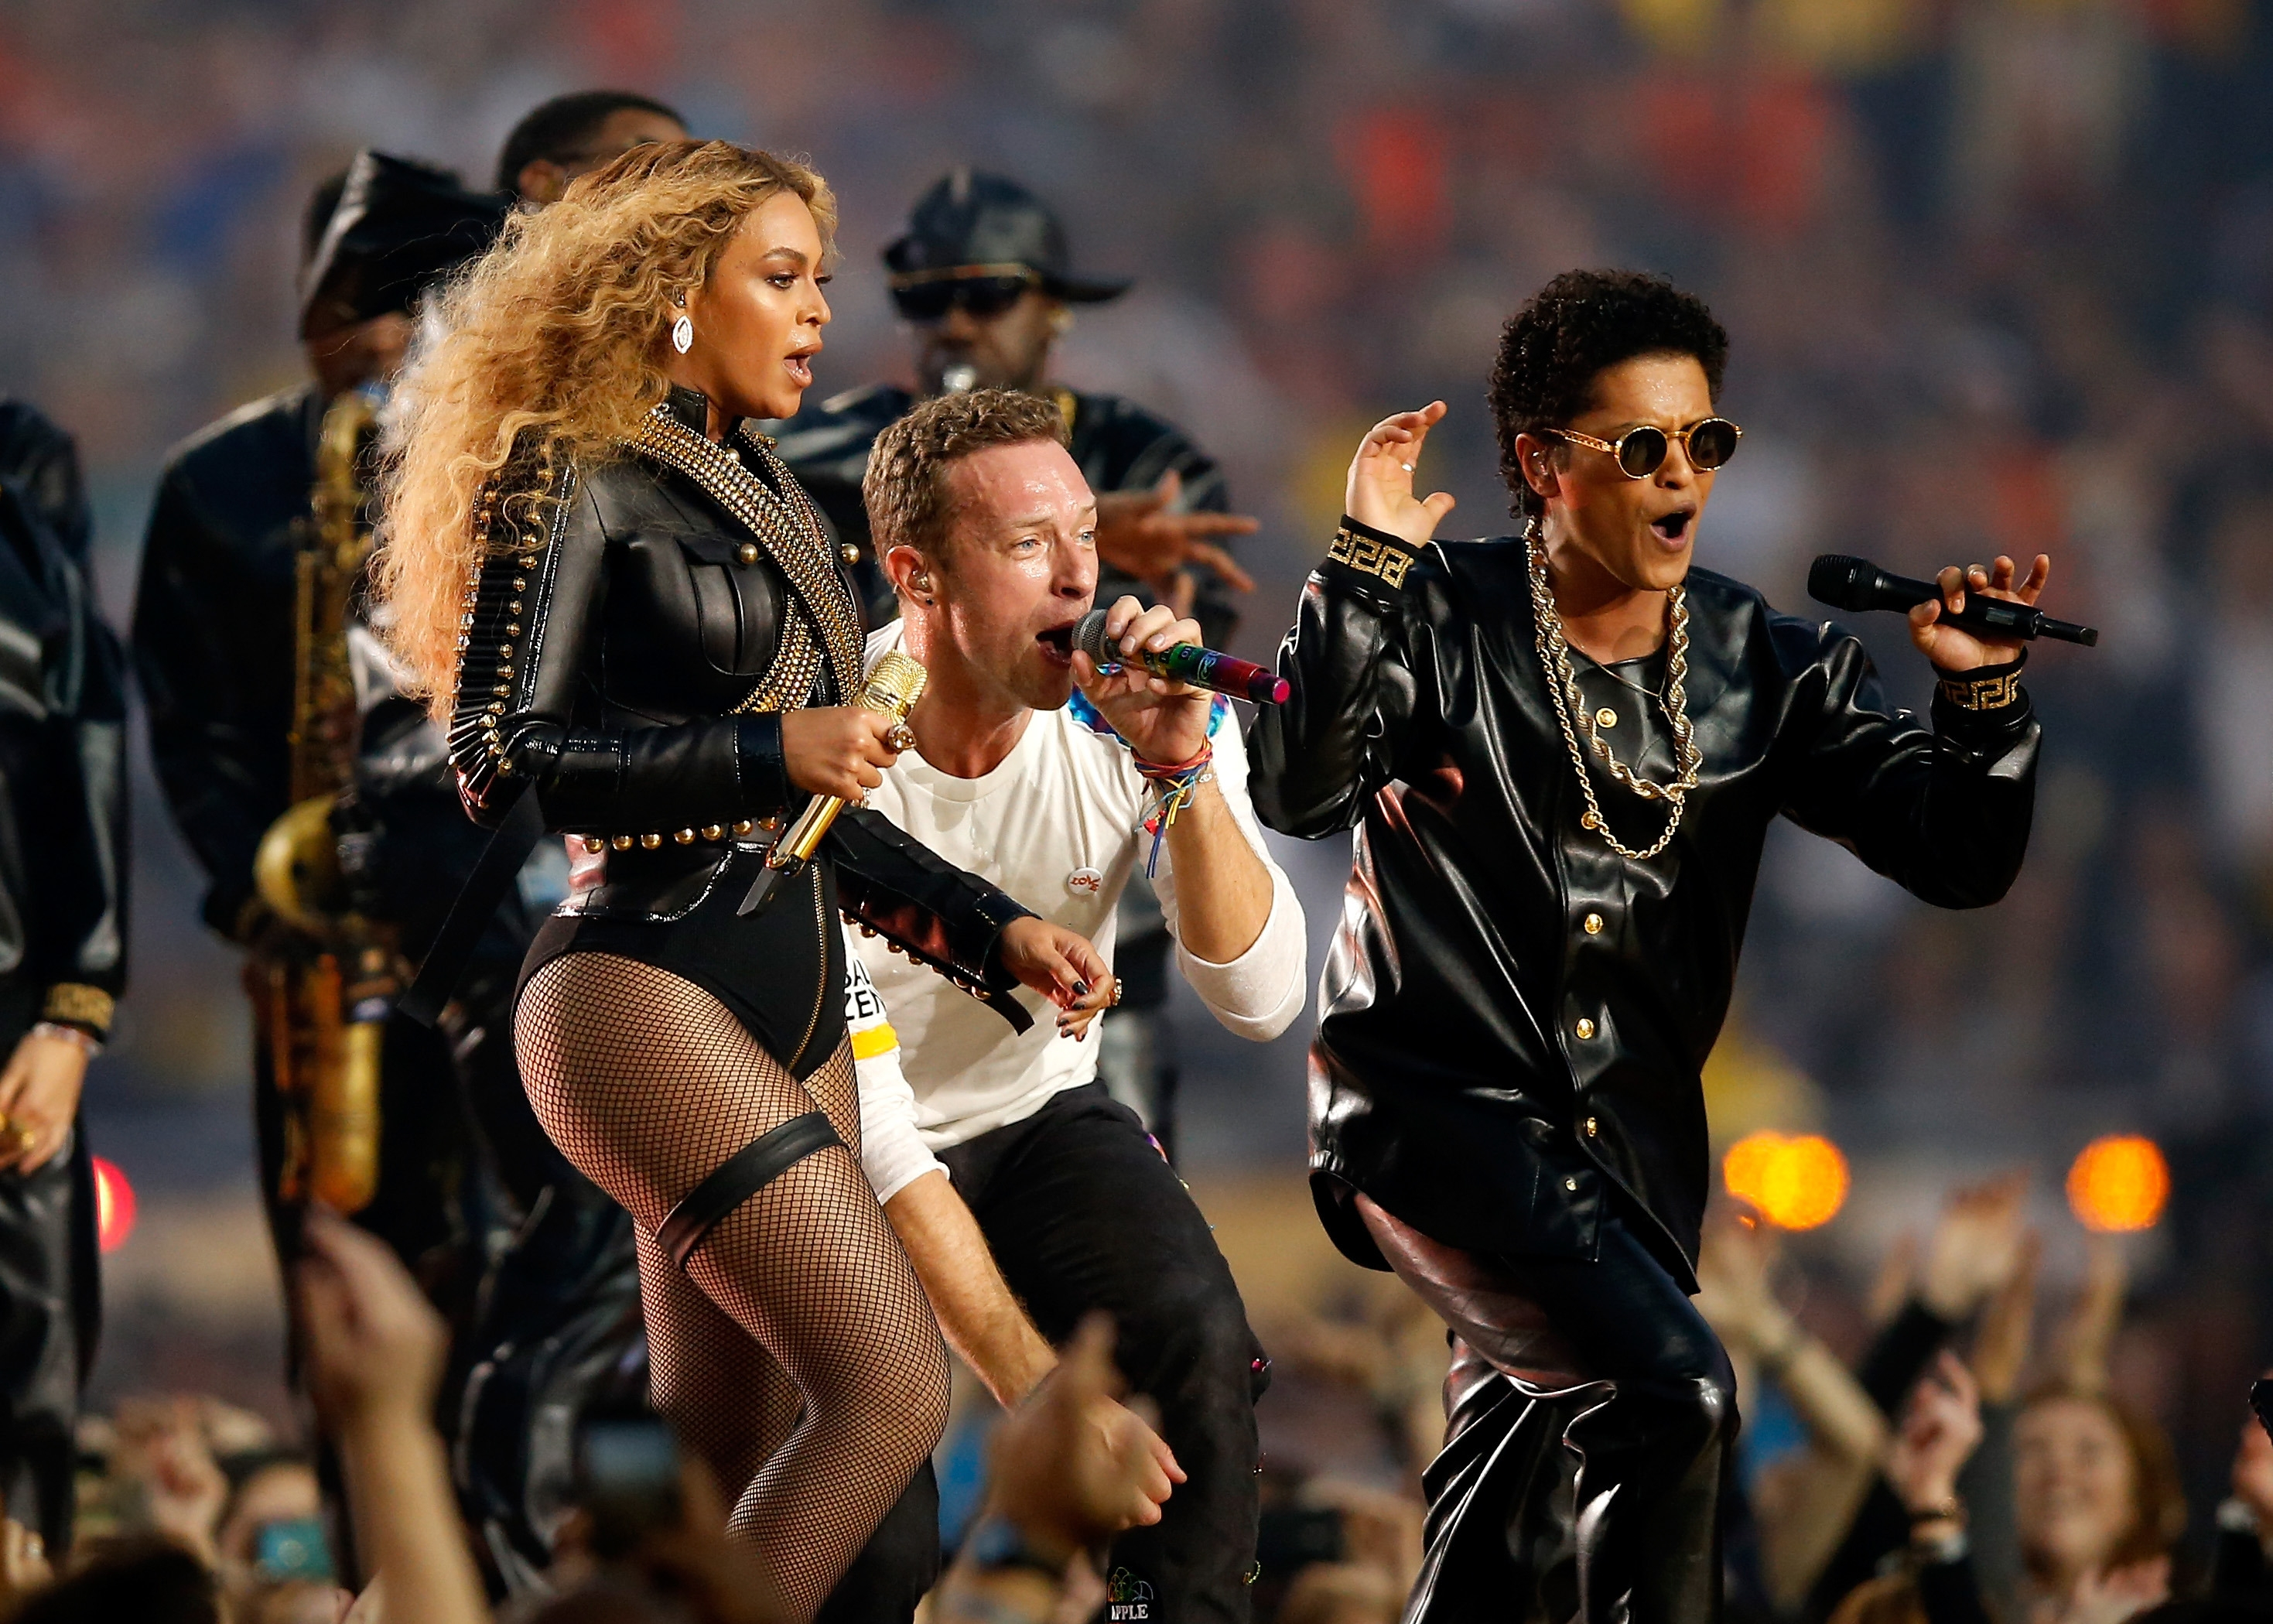 A trio of stars: Beyonce, Chris Martin of Coldplay and Bruno Mars worked together for a song at halftime.